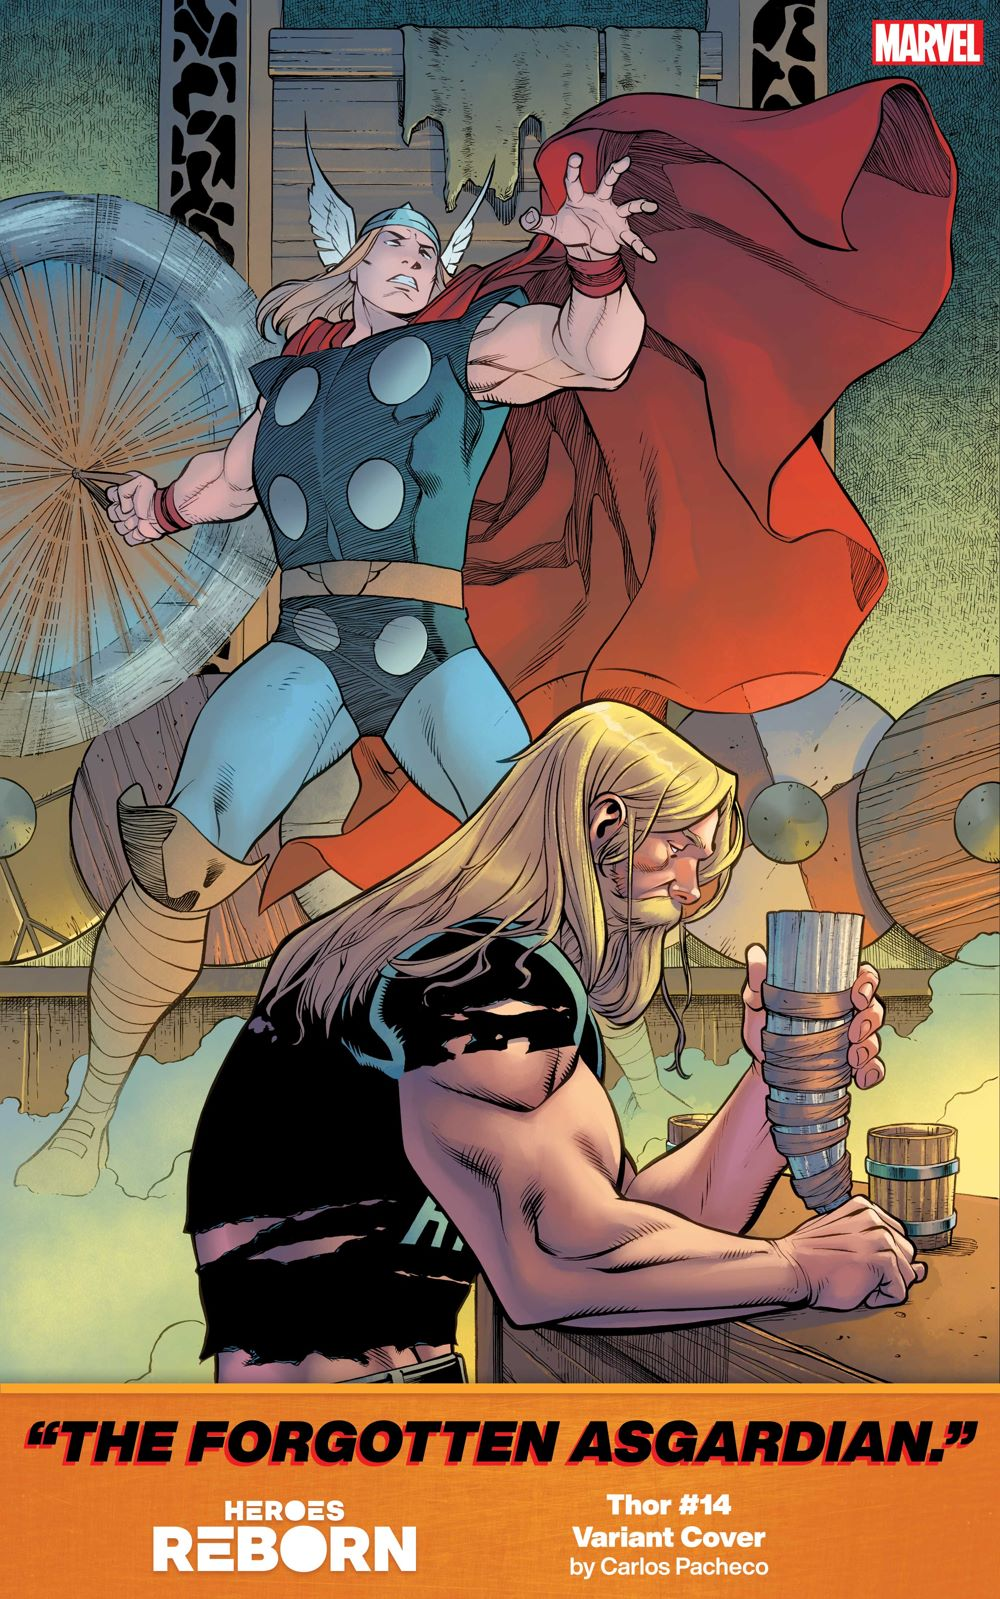 Thor14 Carlos Pacheco's covers document the history of HEROES REBORN